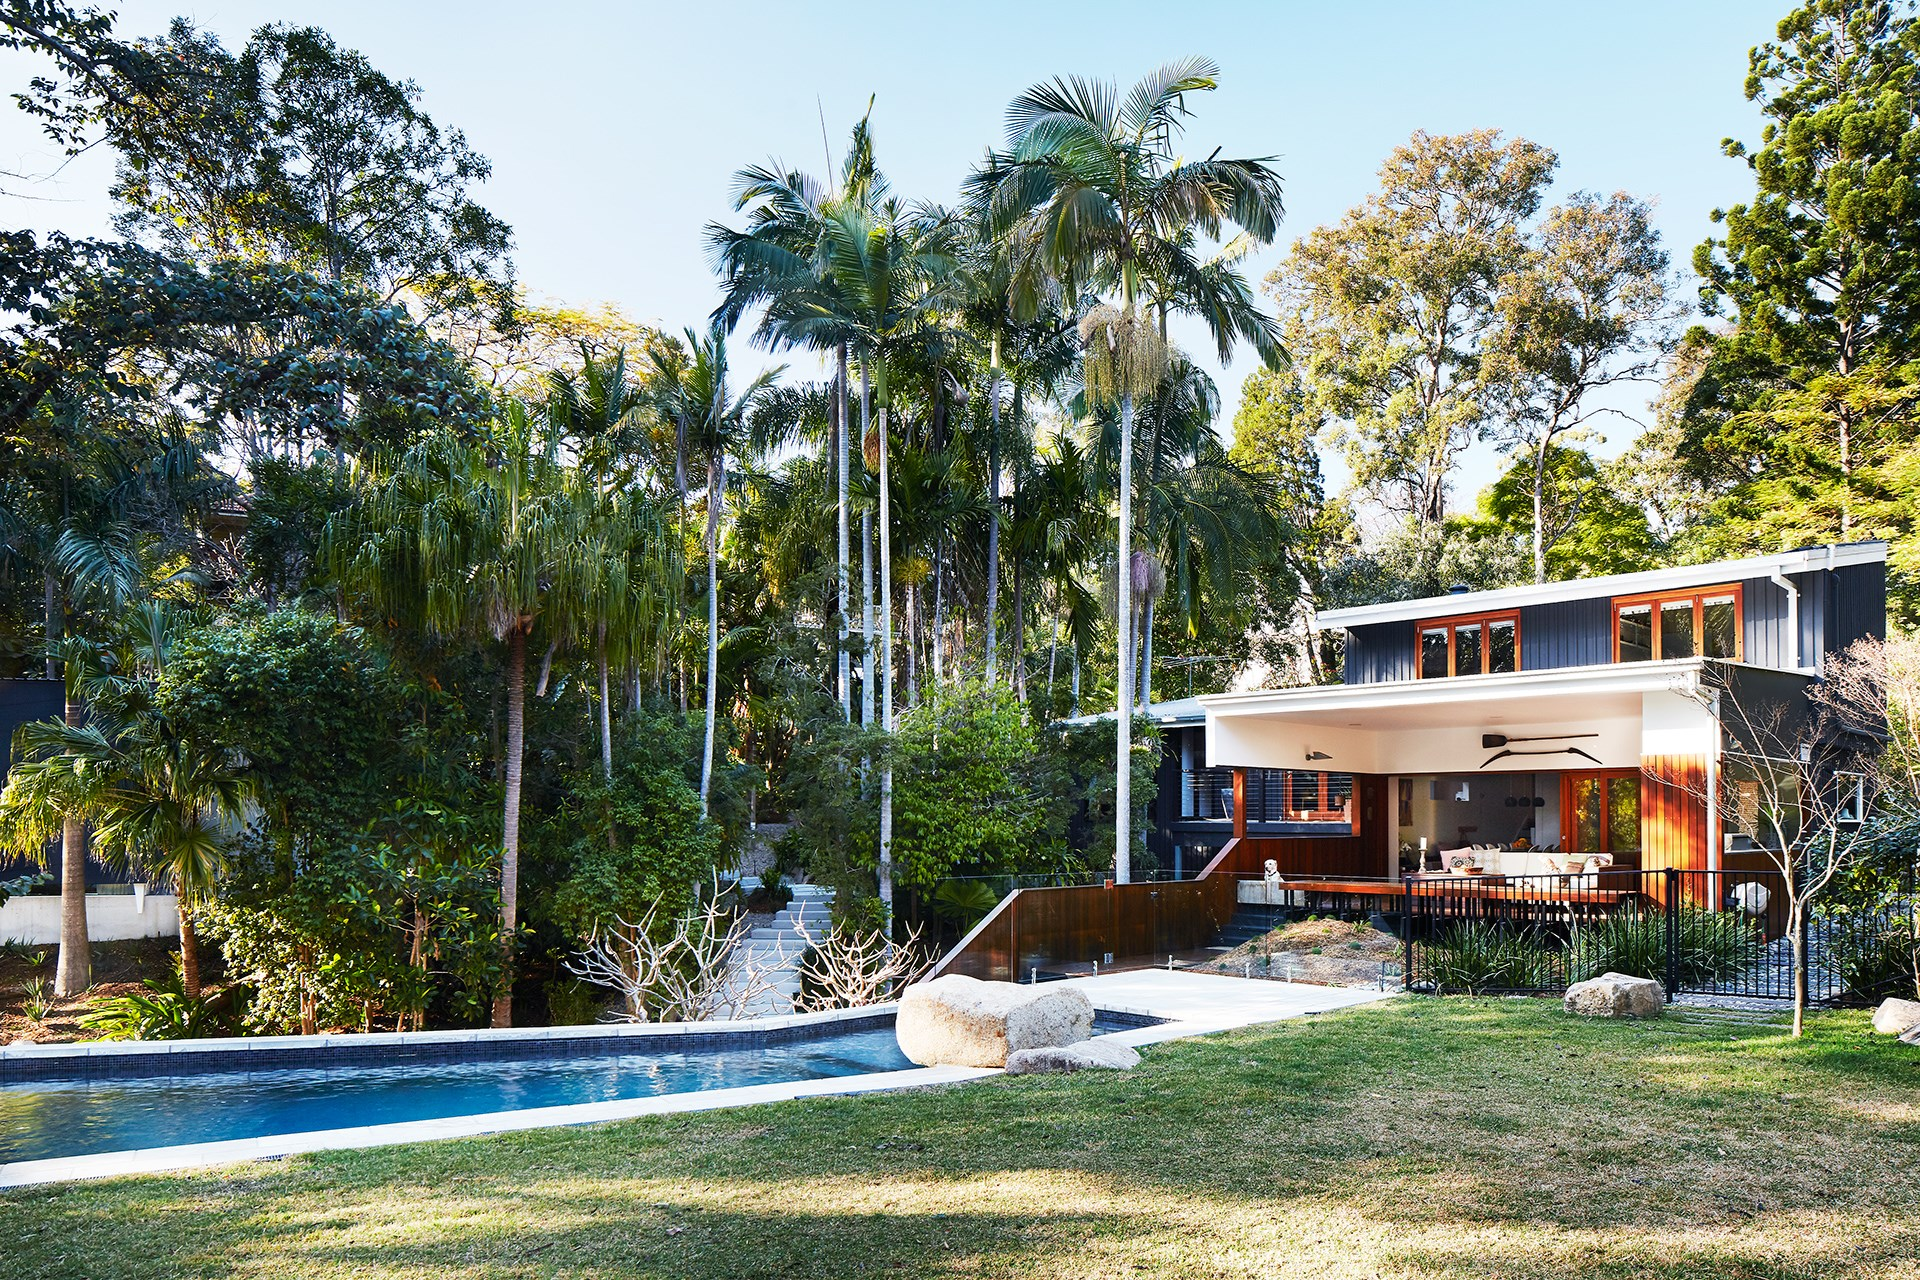 The expansive front yard is a buzzing social space complete with pool,  barbecue area, lawn and sheltered deck. Landscaping by Stephen Clegg Design.